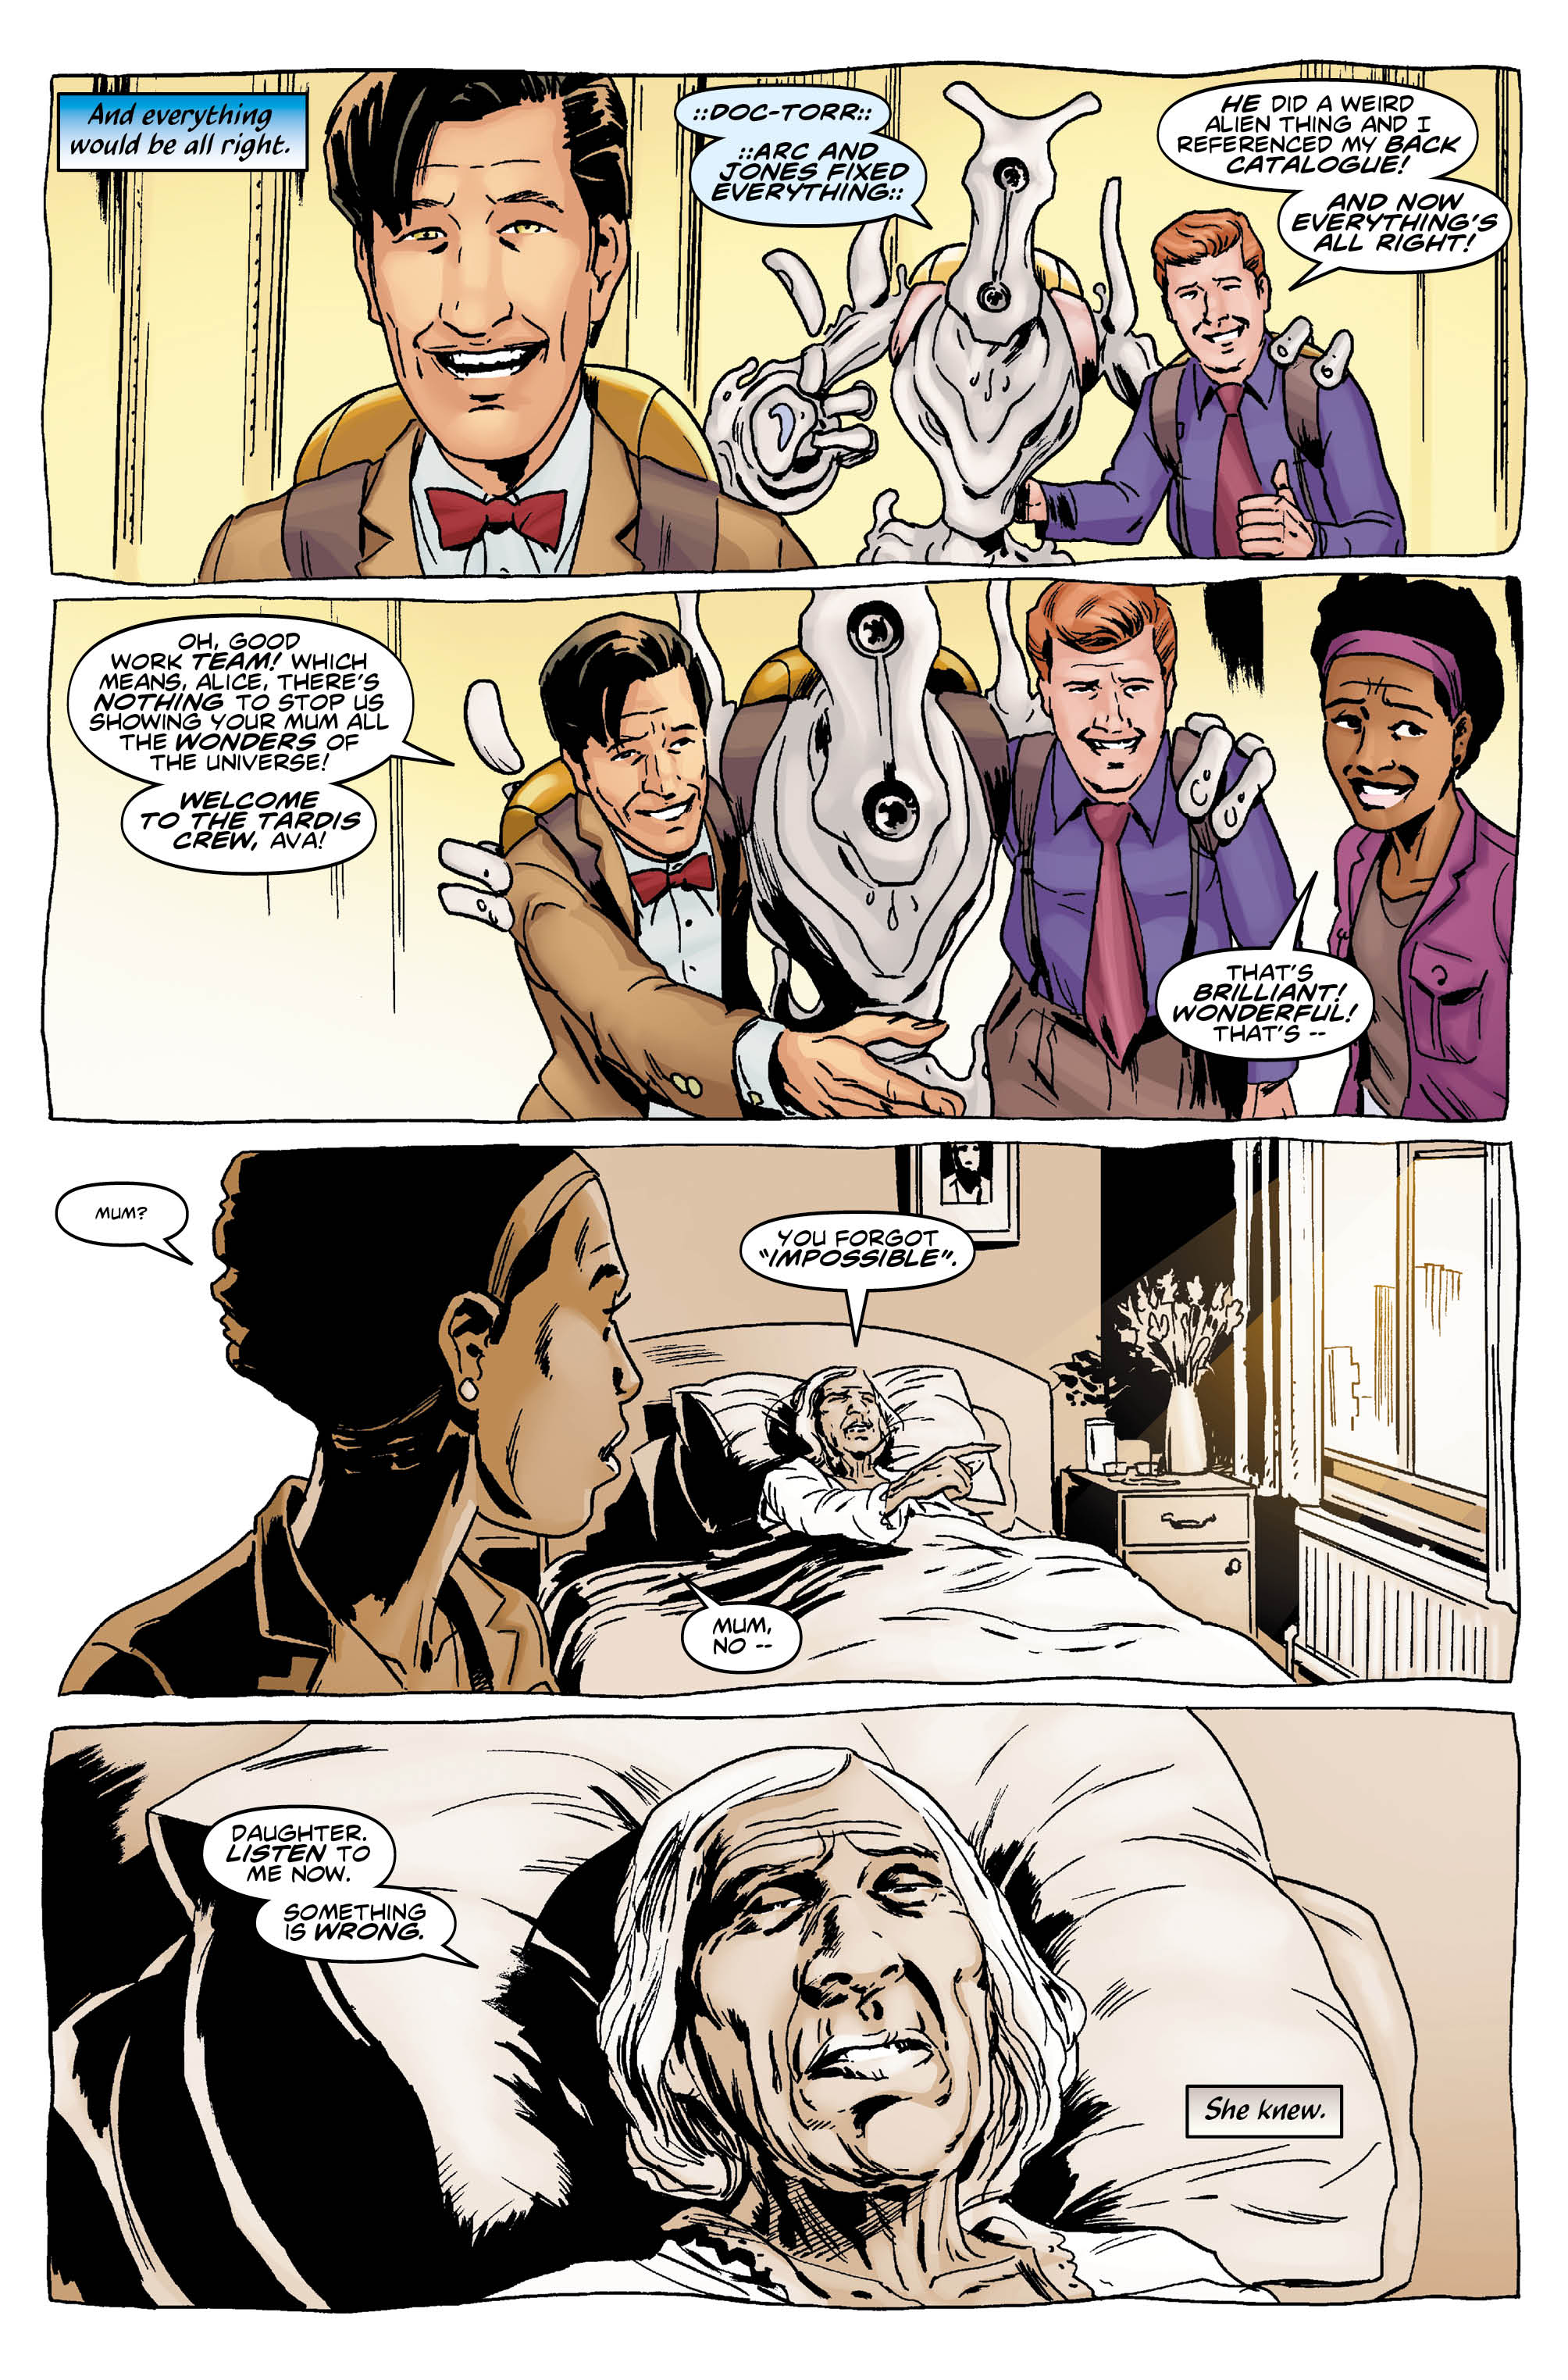 The Eleventh Doctor #8 (Credit: Titan)